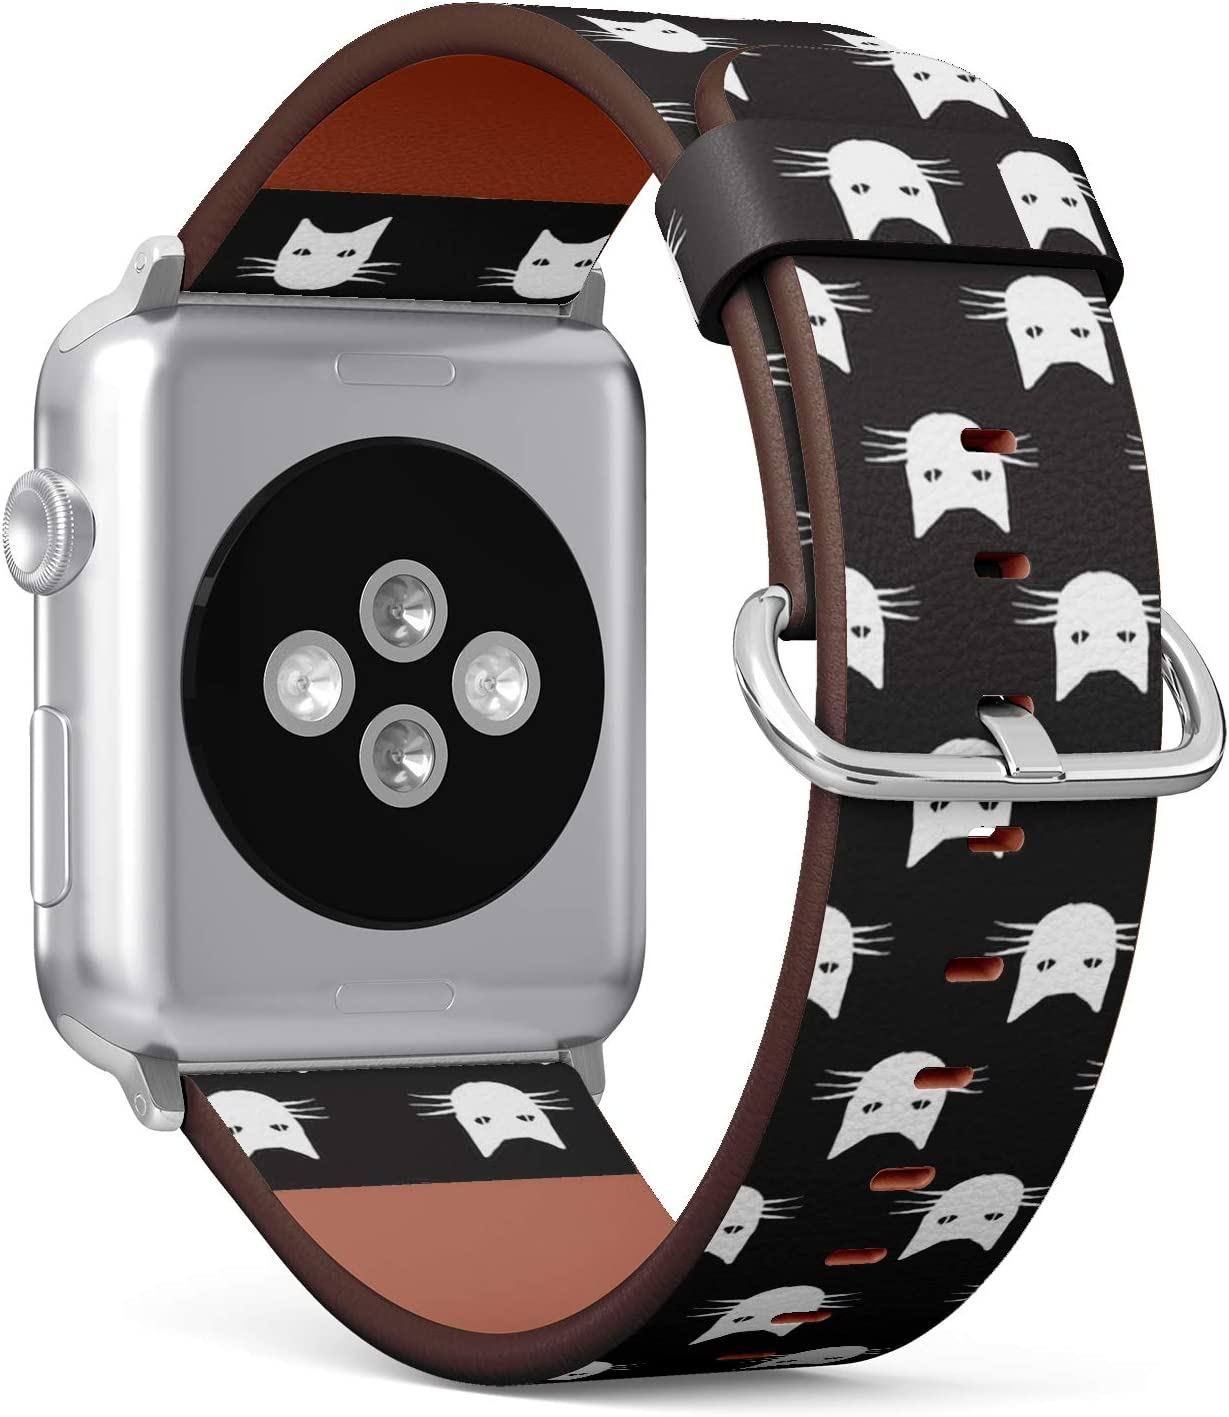 Compatible with Apple Watch (Big 42mm/44mm) Series 1,2,3,4 - Leather Band Bracelet Strap Wristband Replacement - Cats Head Animal